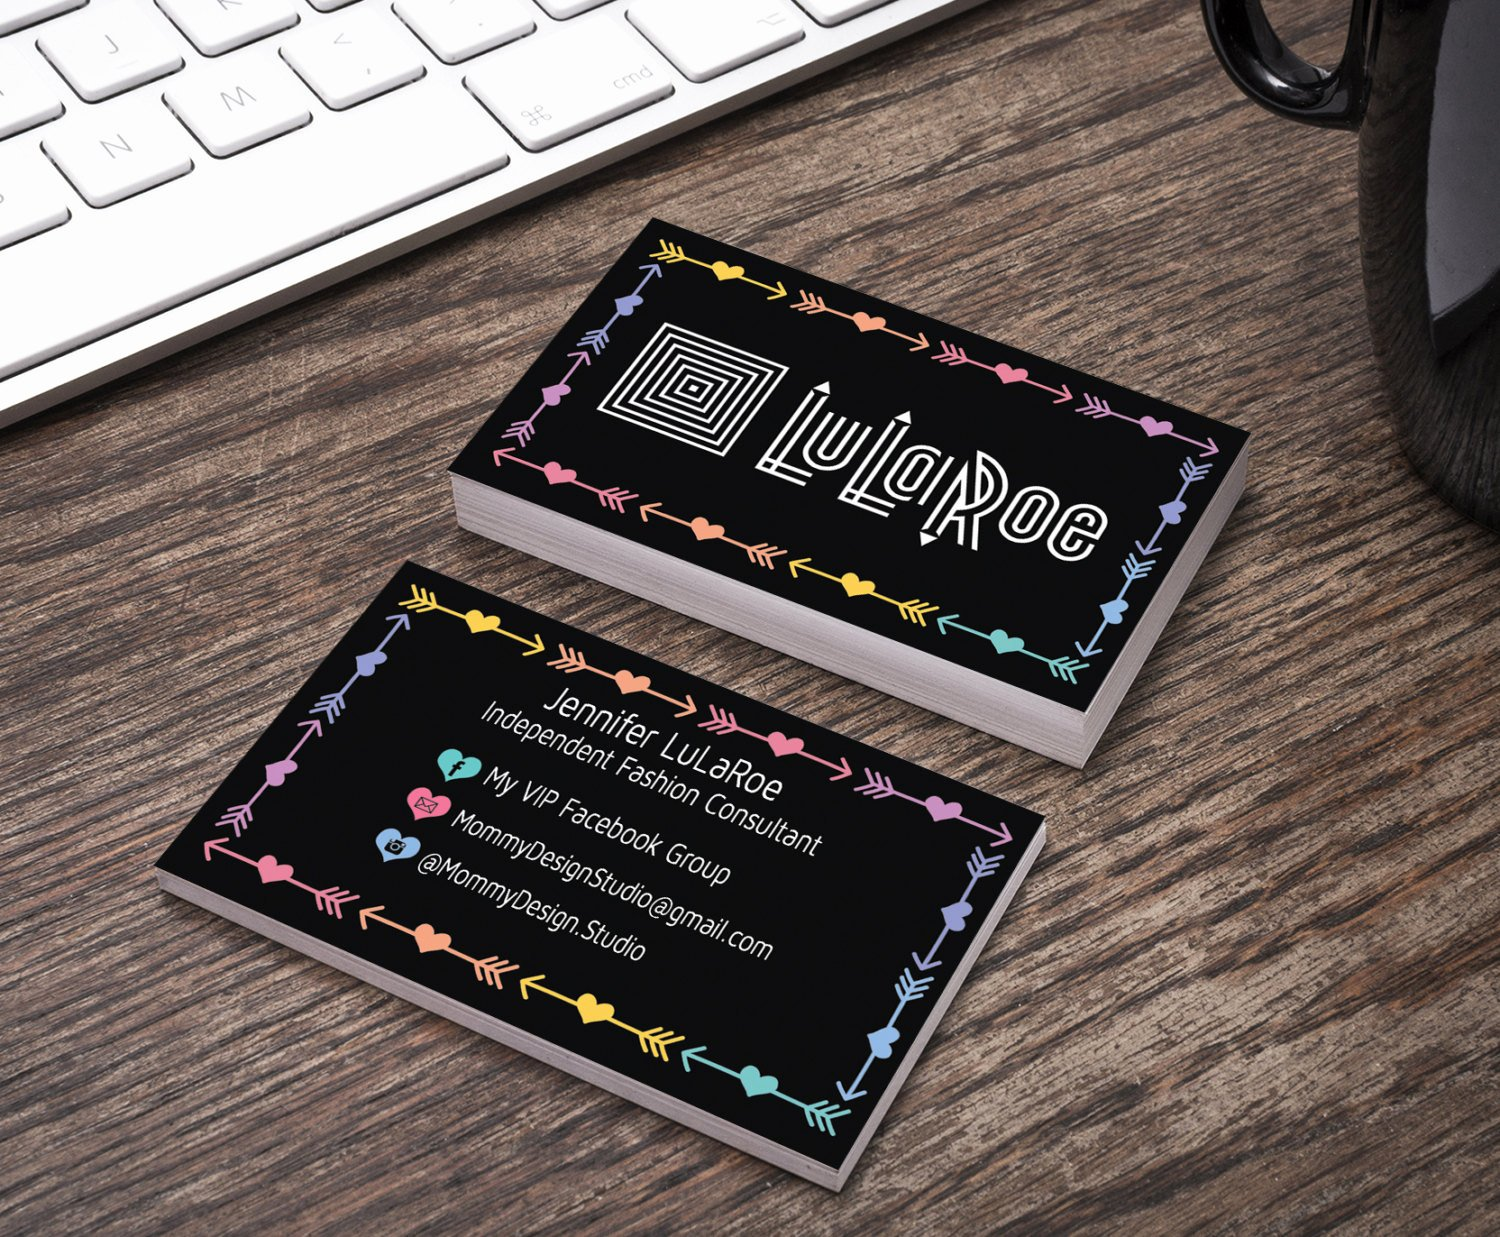 Lularoe Business Card Template New Lularoe Business Card Black Arrow & Heart by Mommydesignstudio